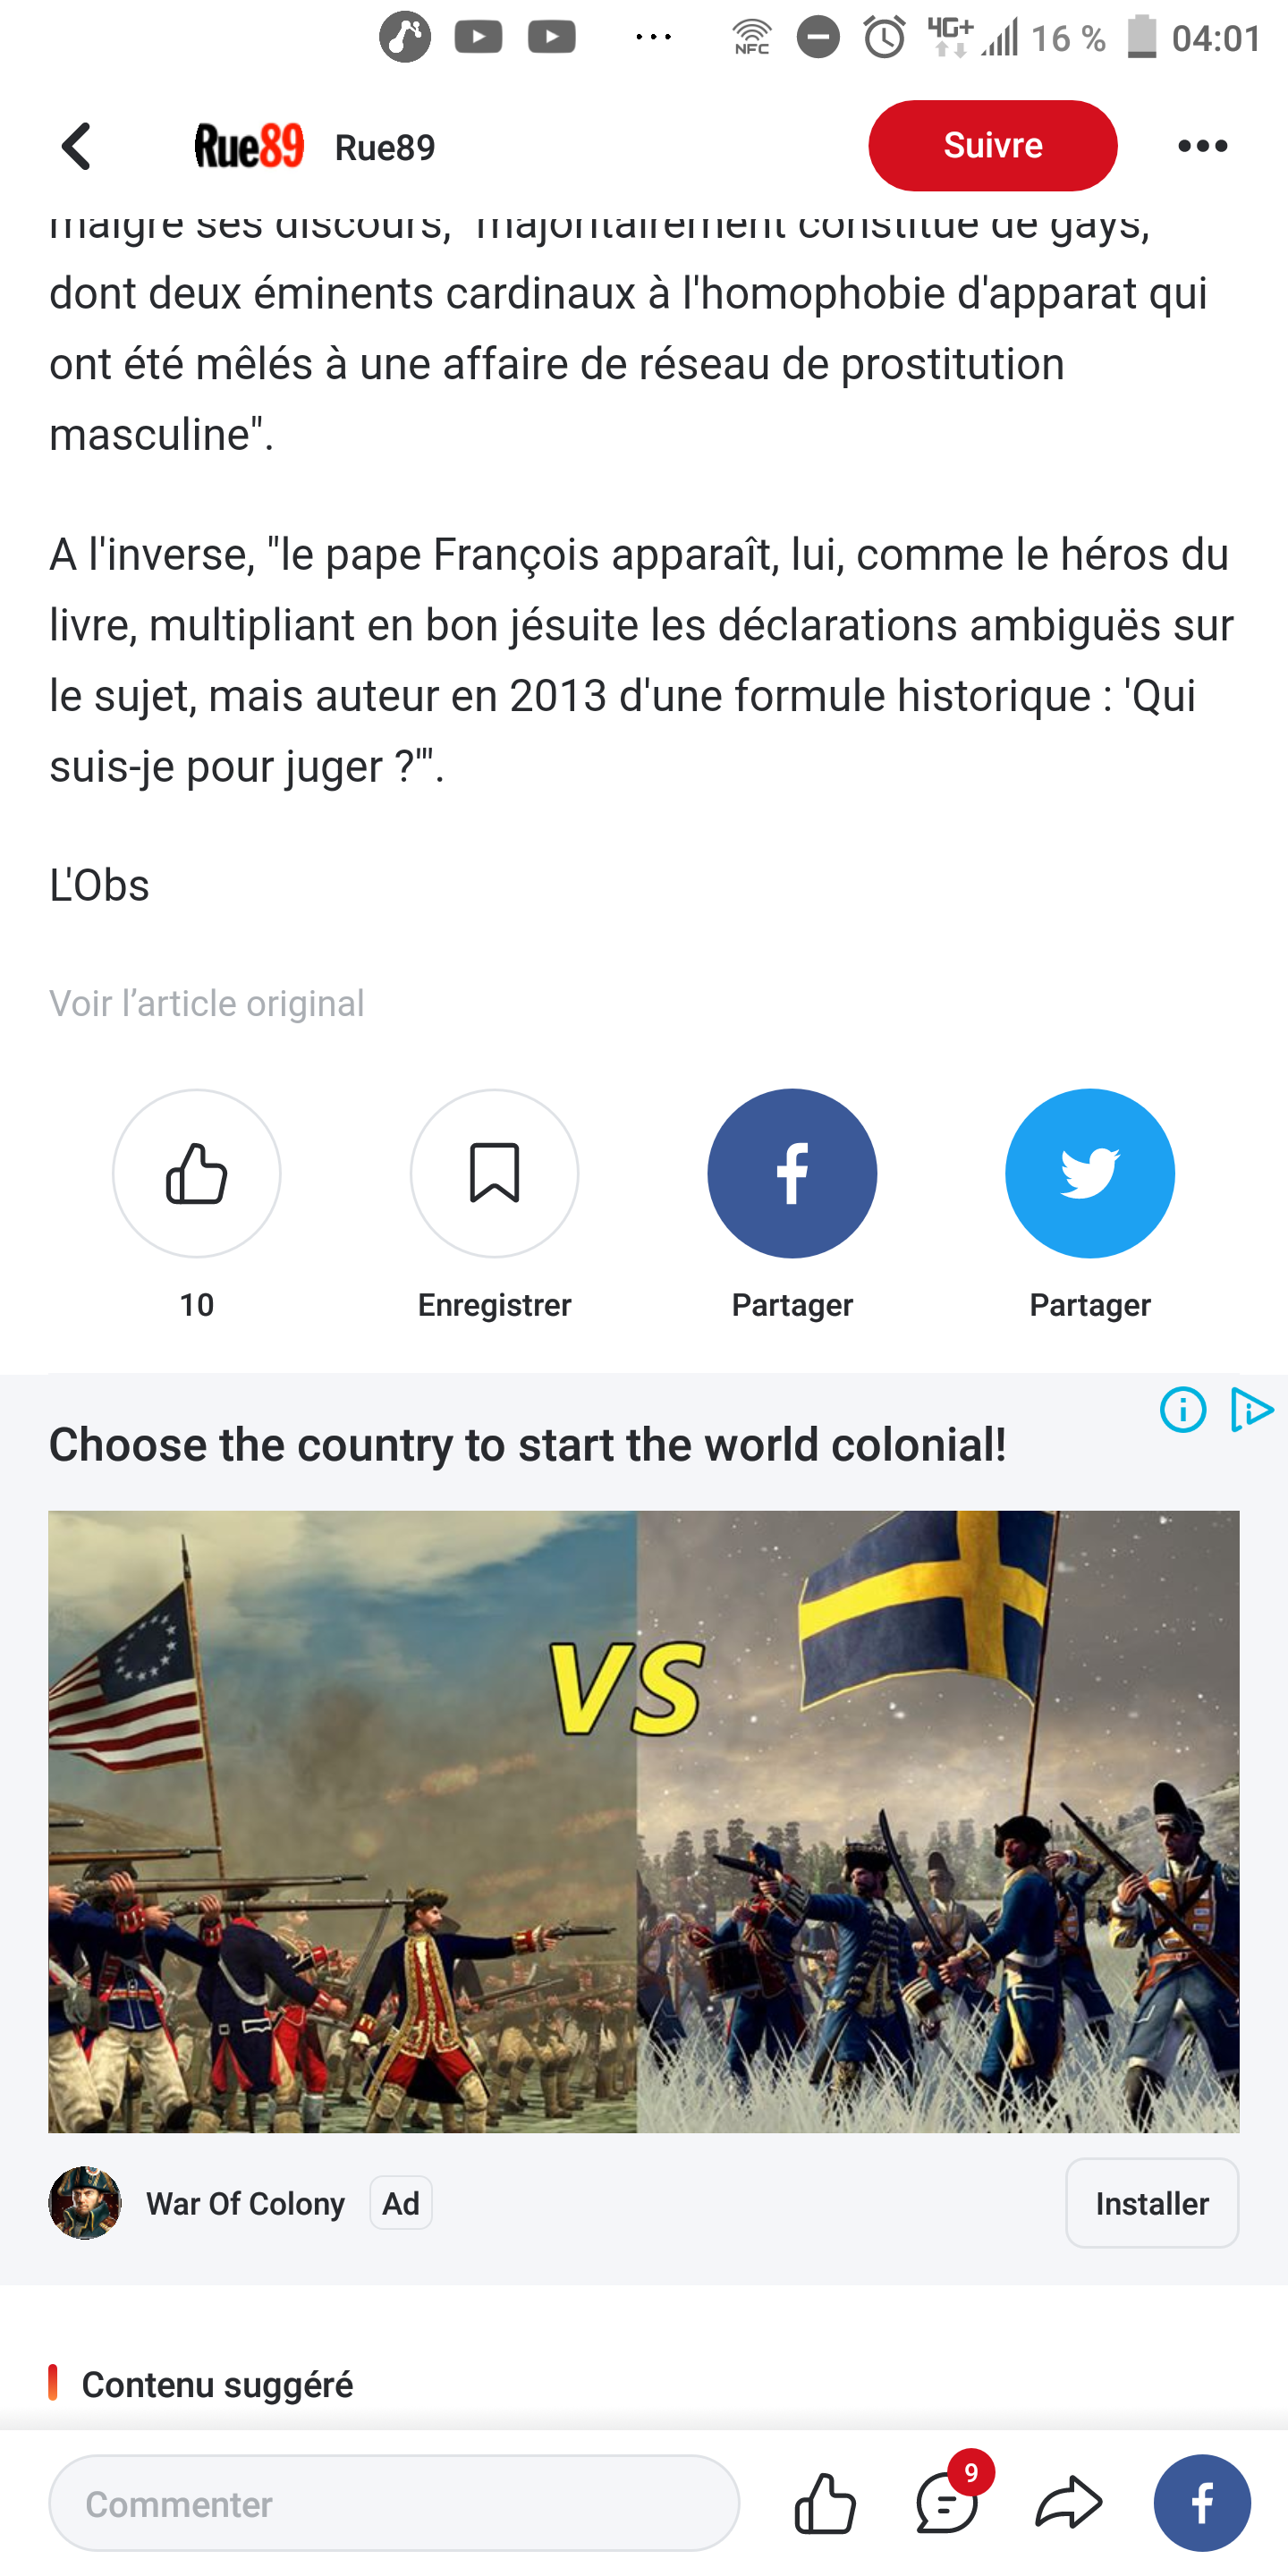 An ad for an mobile game use Empire total war footage